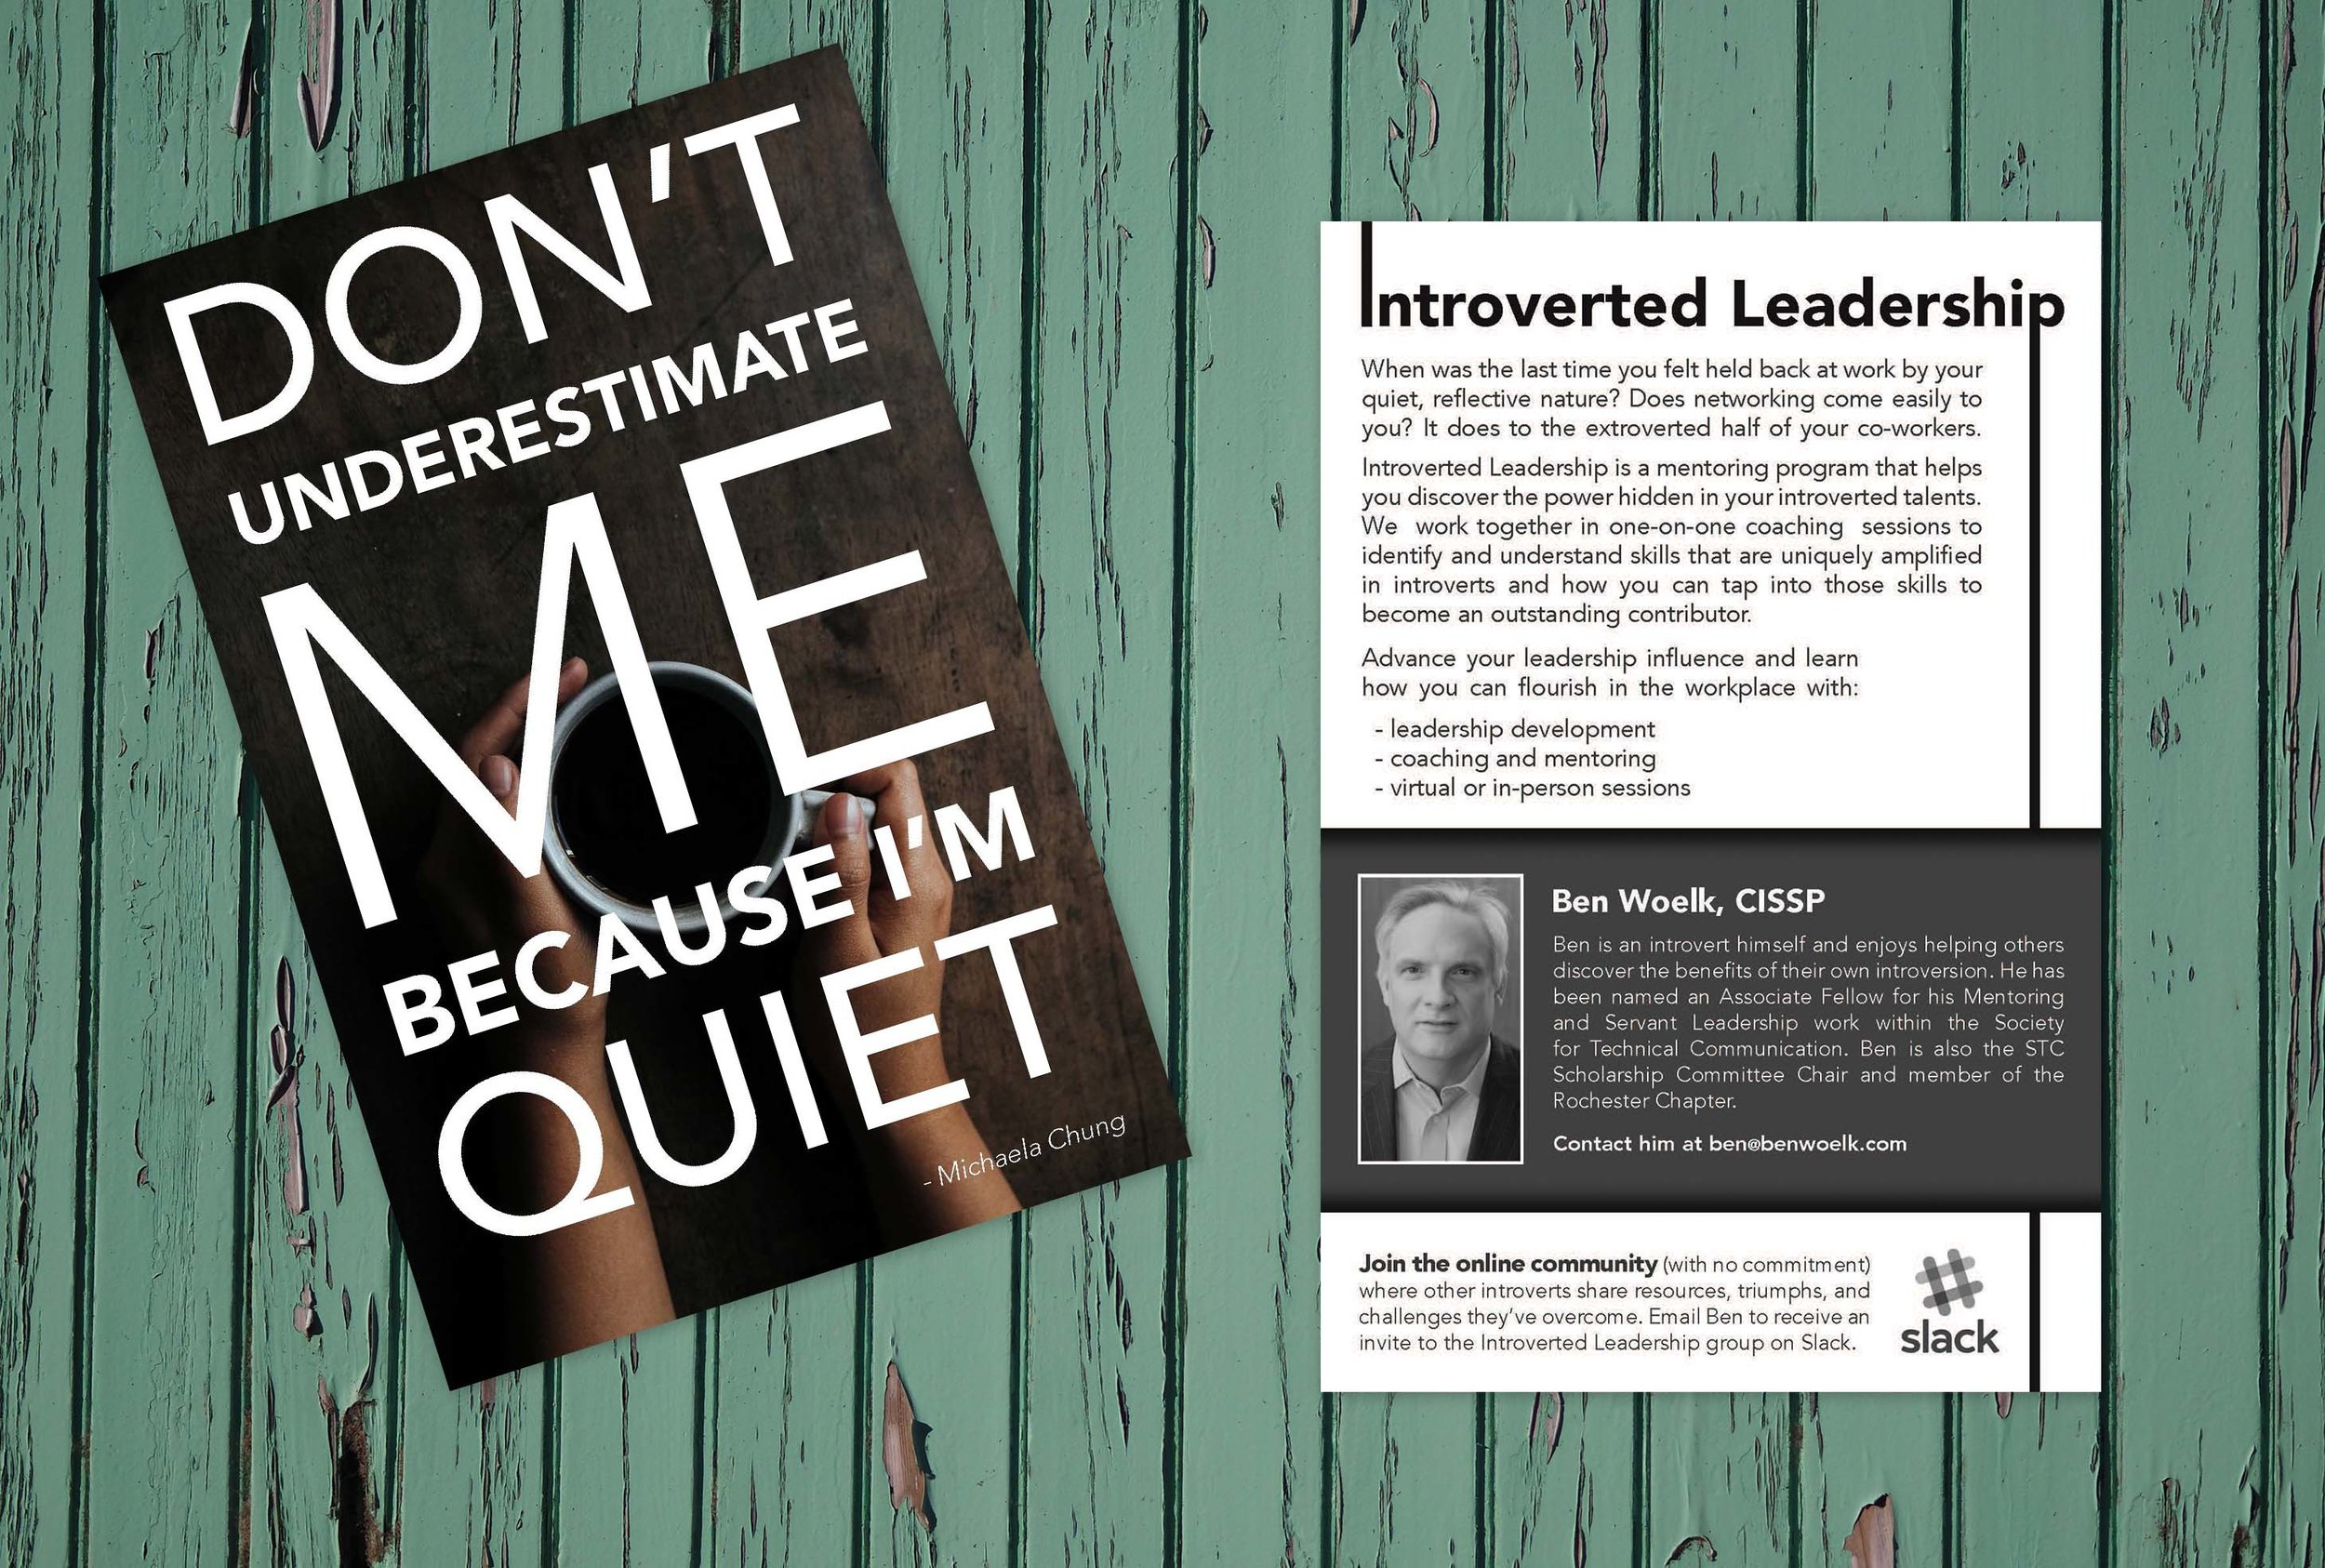 Introverted Leadership Flyer